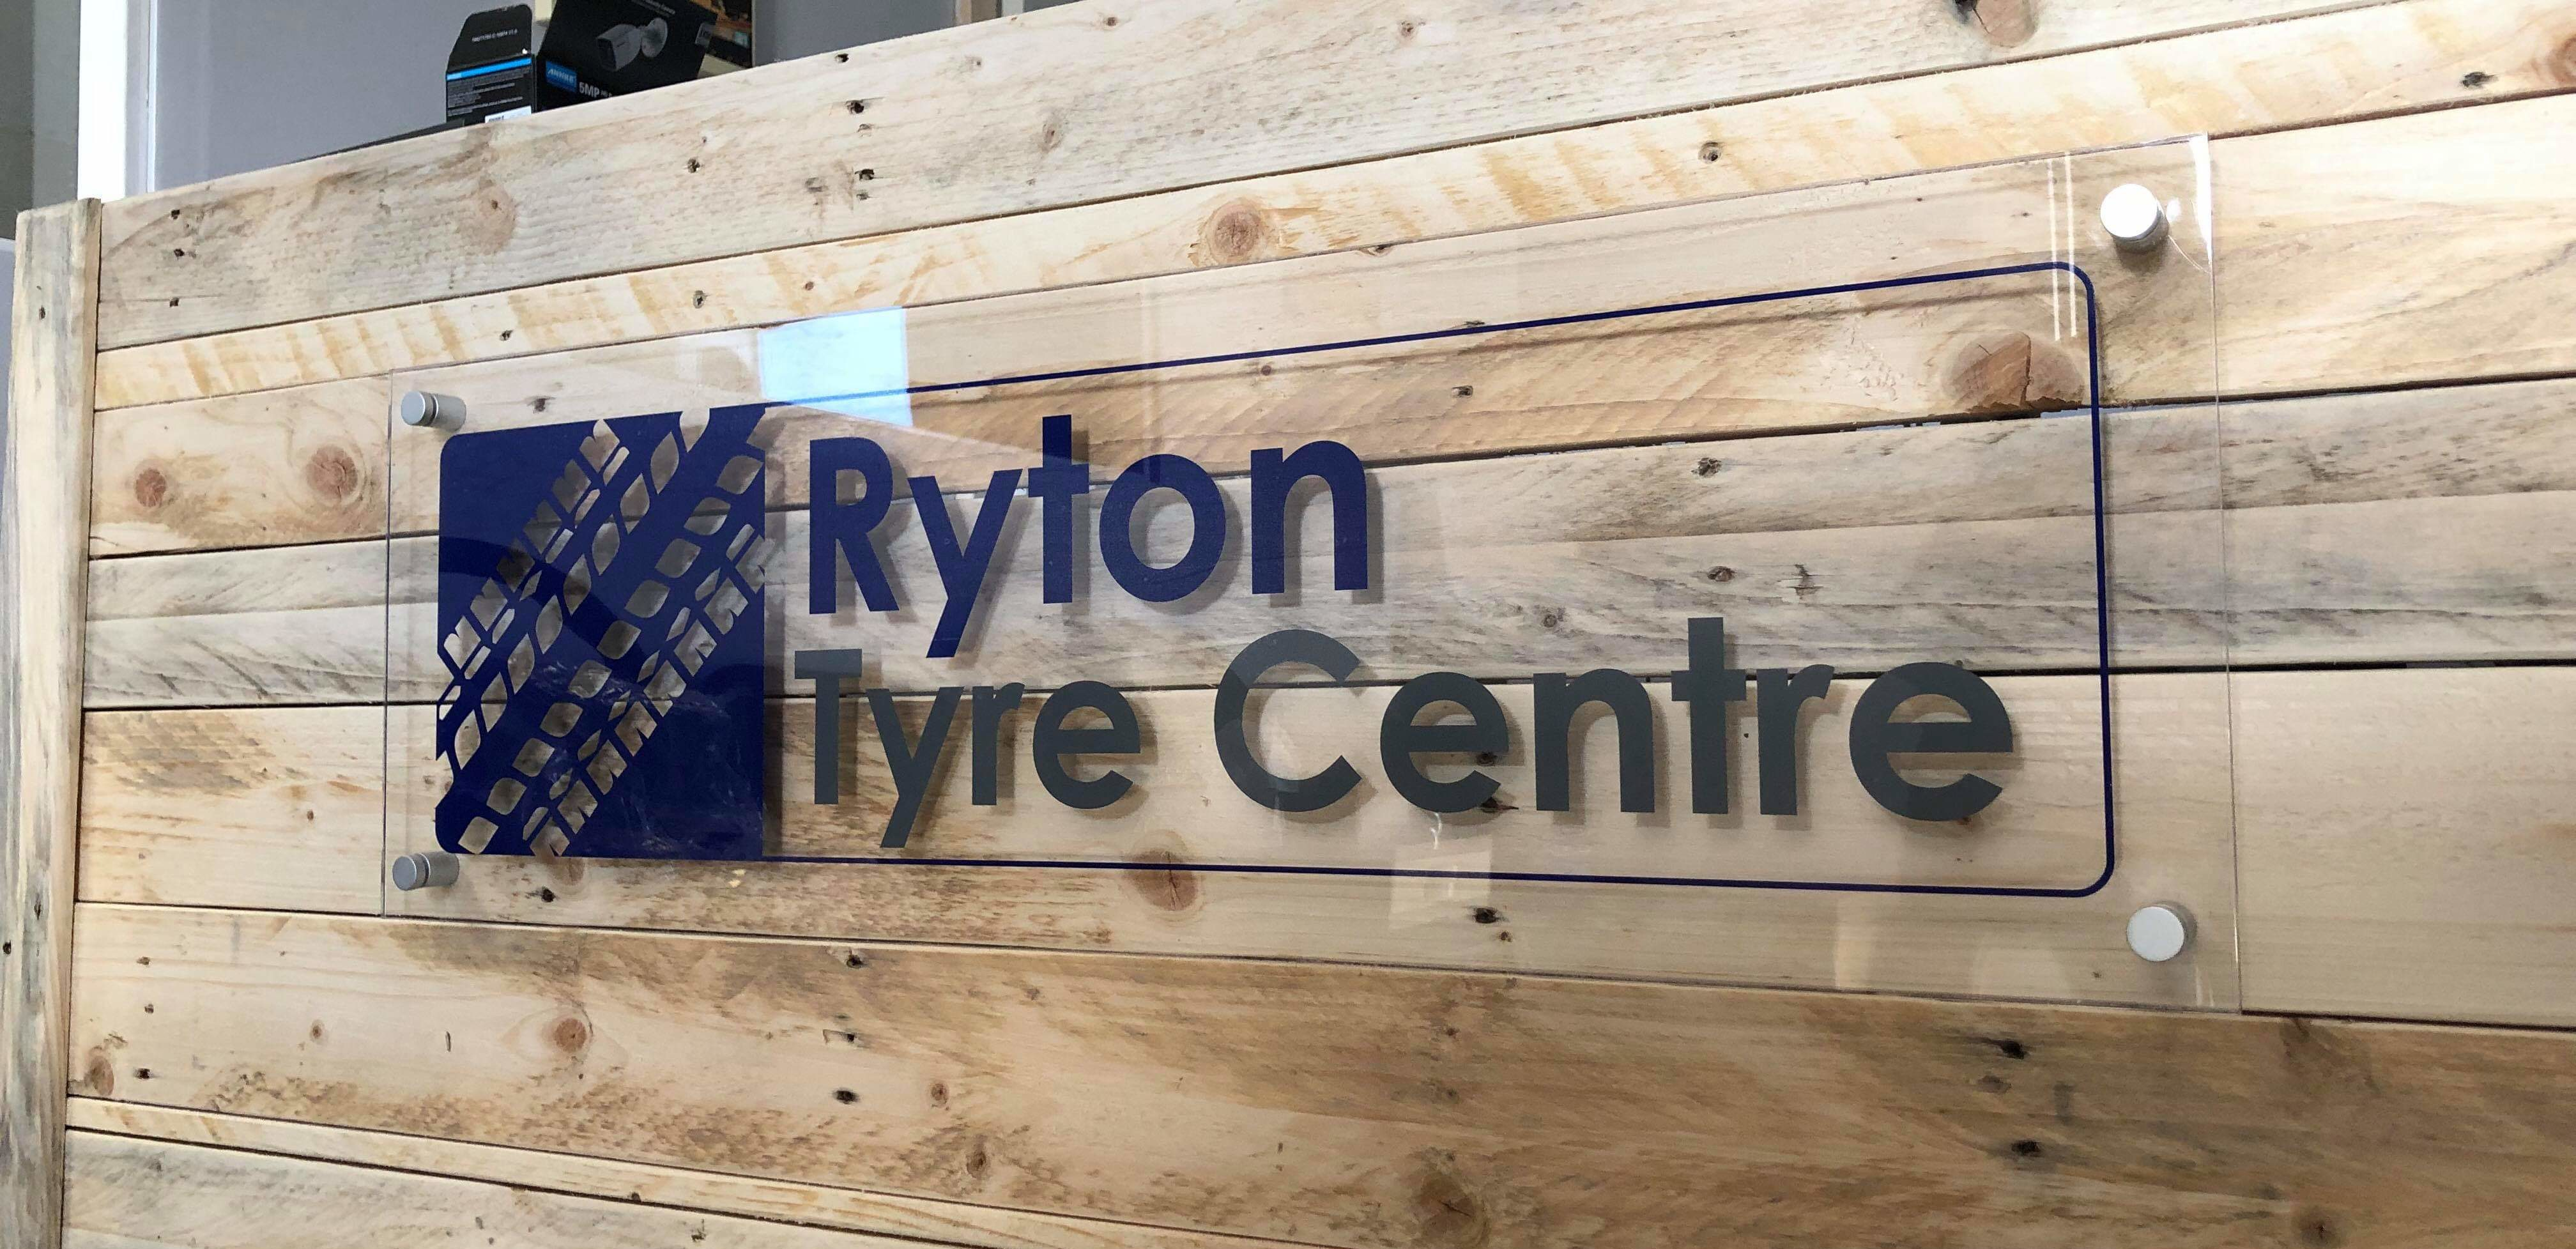 Ryton Tyre Centre Desk Sign